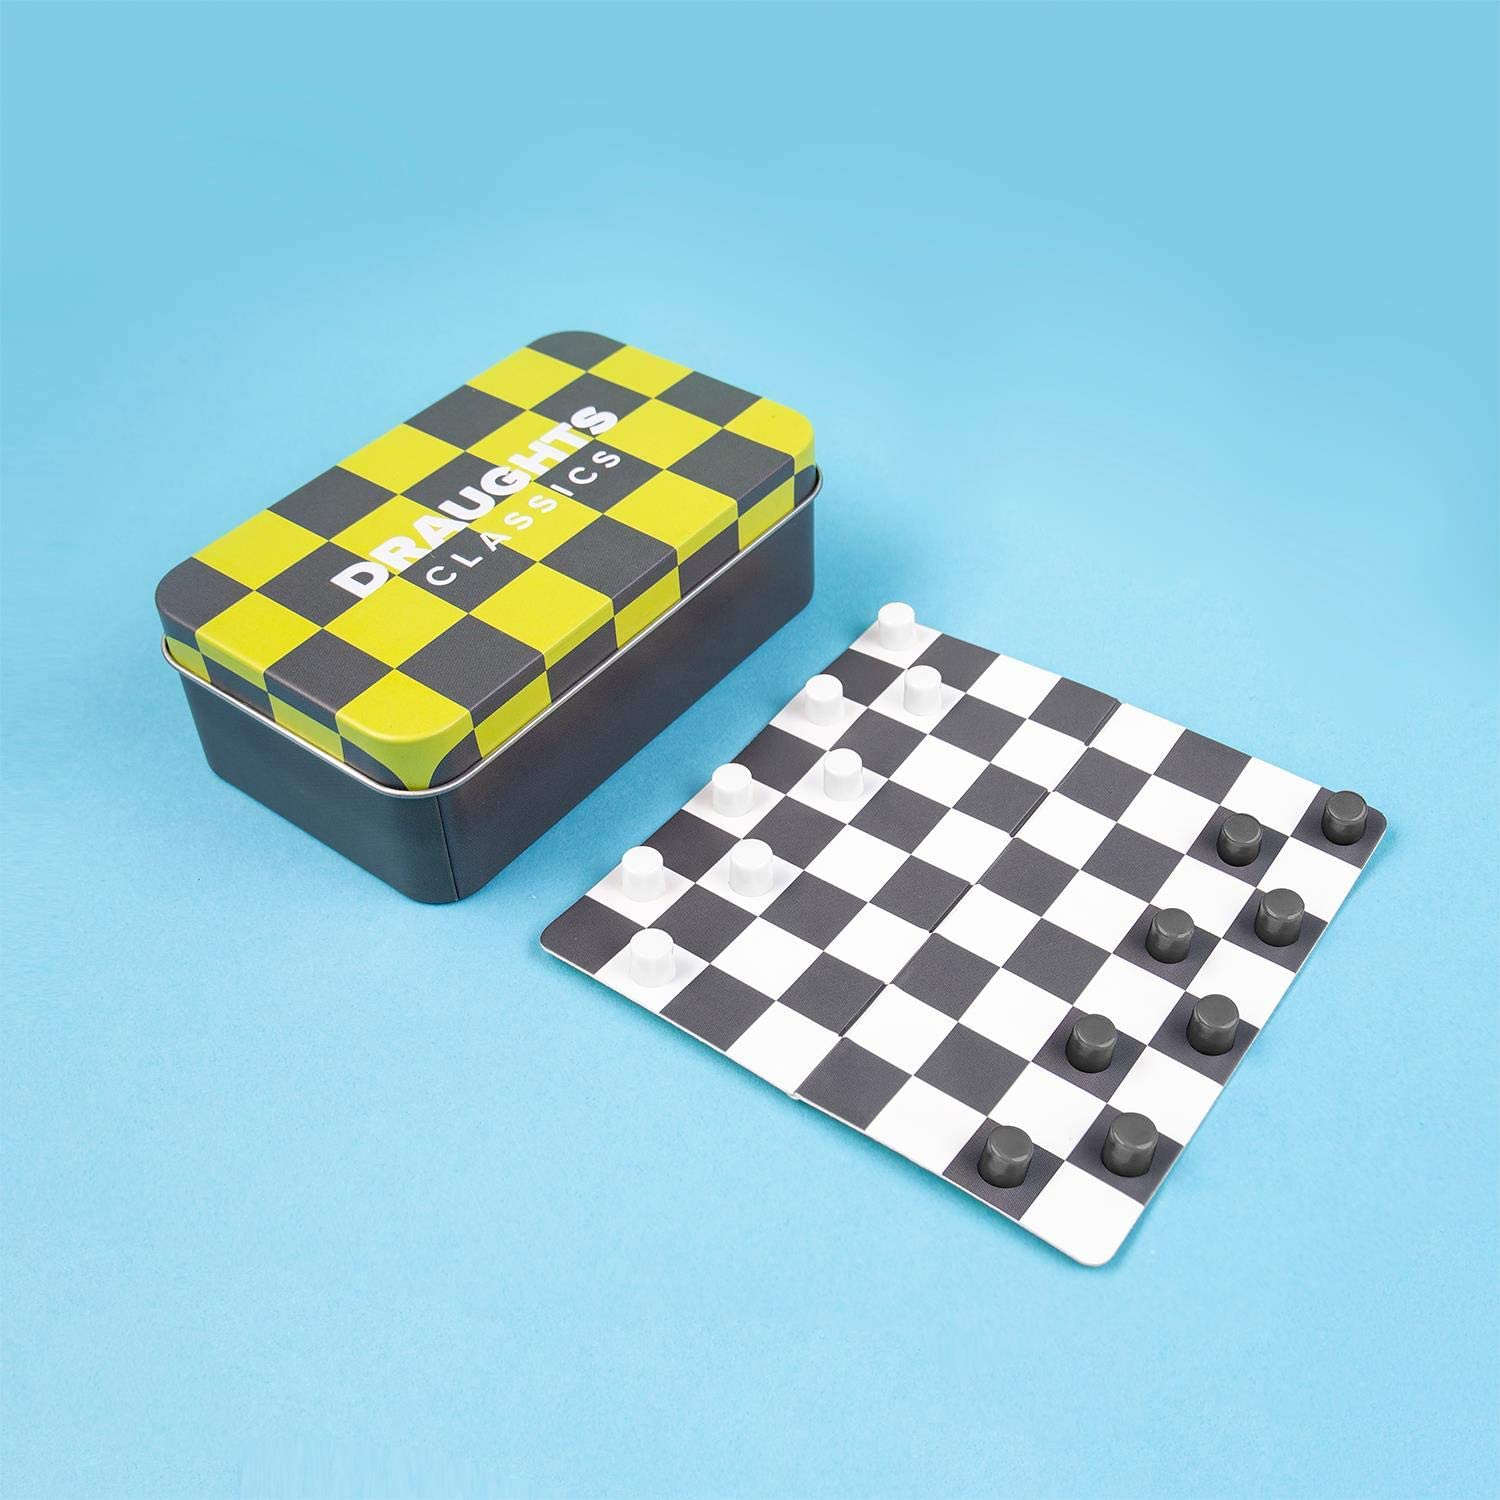 Fizz Creations Draughts Travel Game